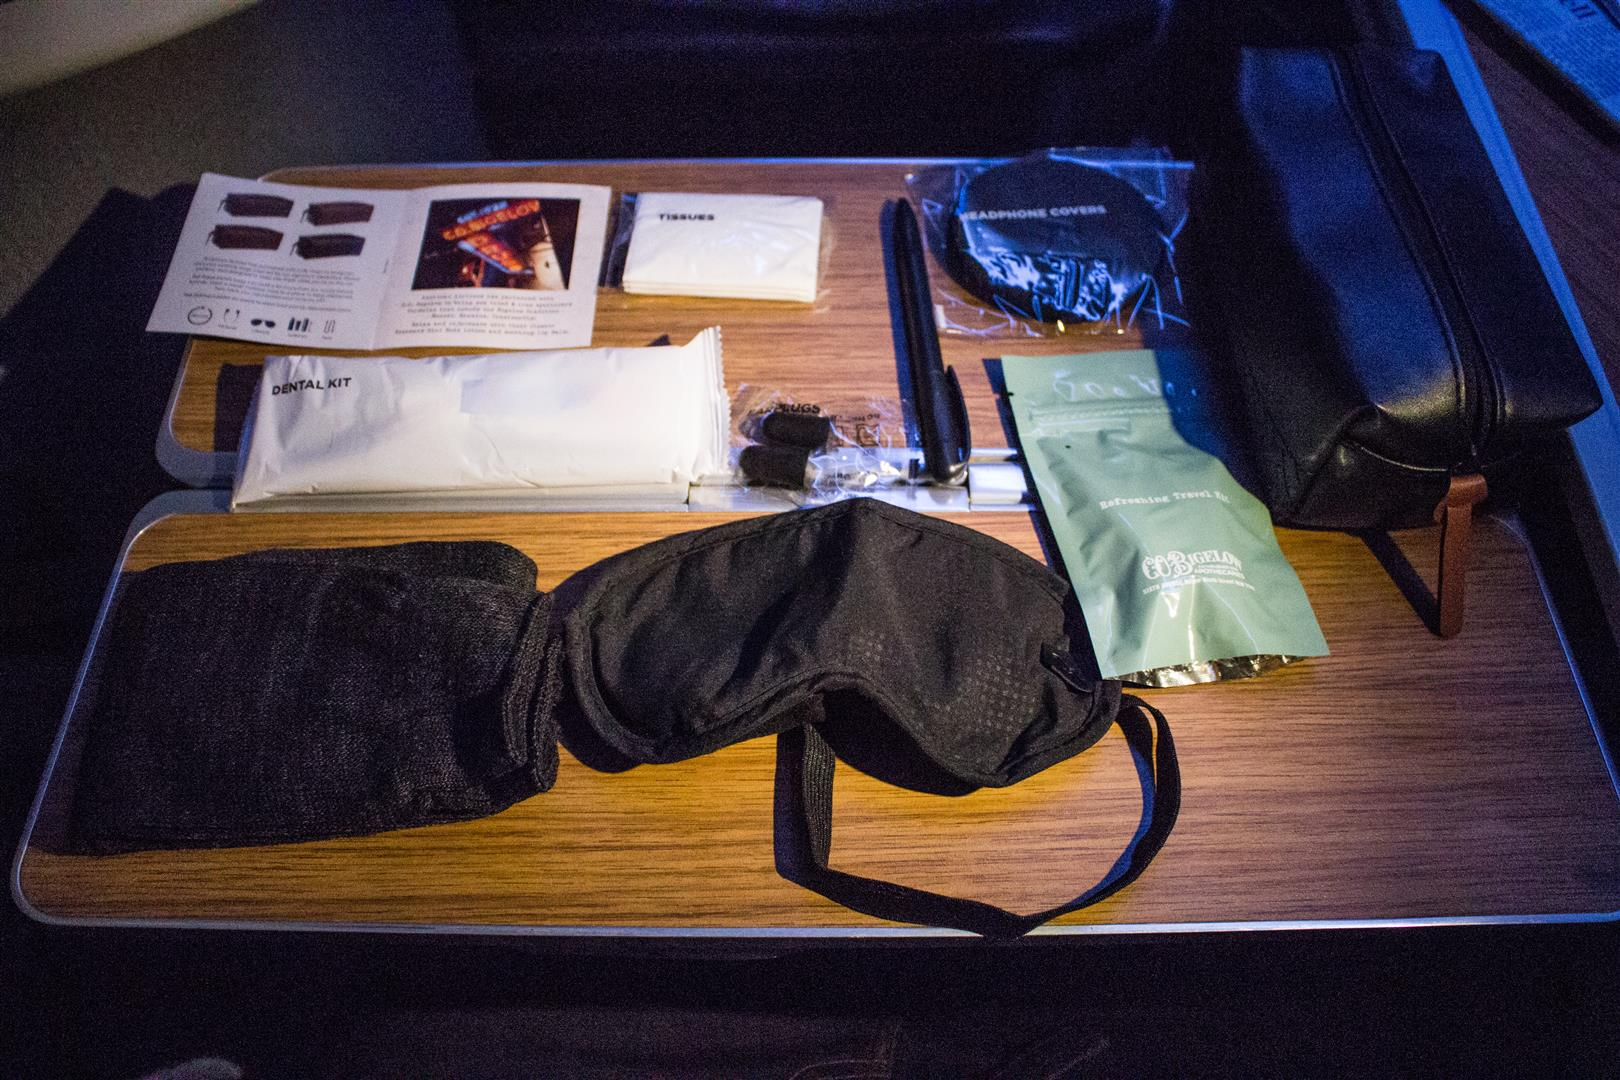 The Amenity Kit, all it needs now is a Swiss Army Knife